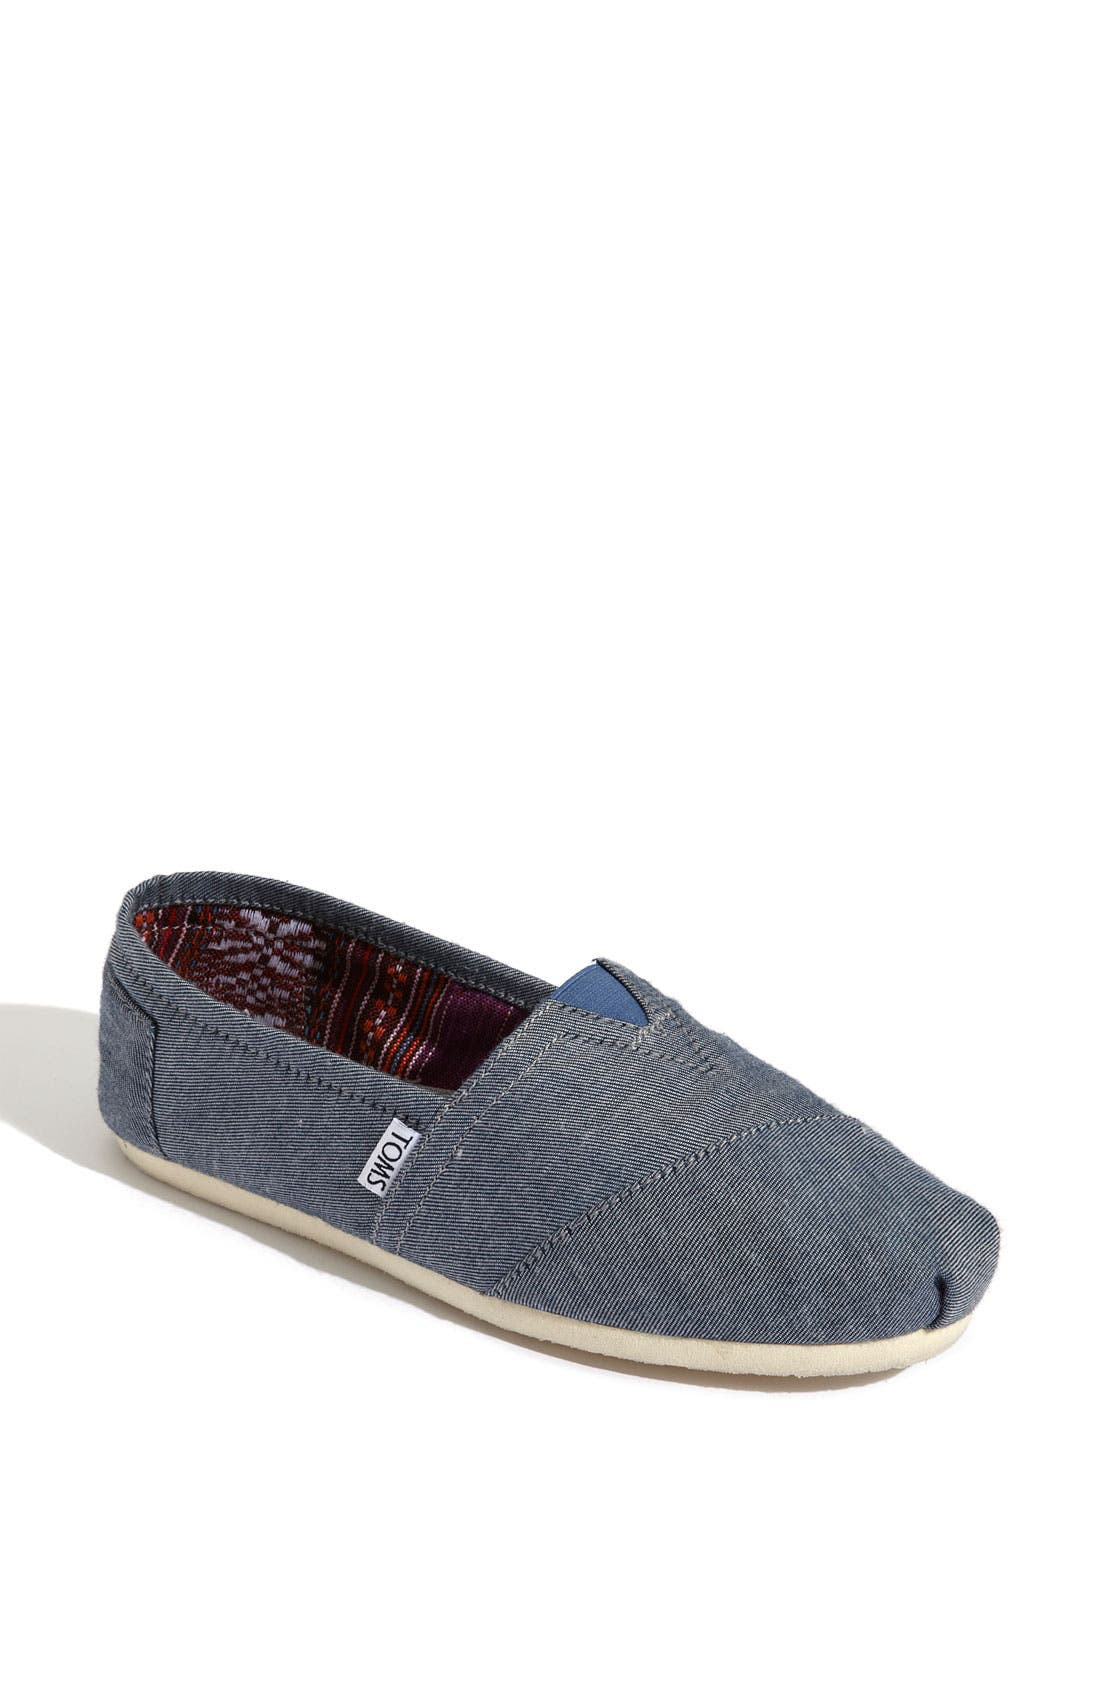 Alternate Image 1 Selected - TOMS 'Seasonal Classic - Corry' Slip-On (Women)